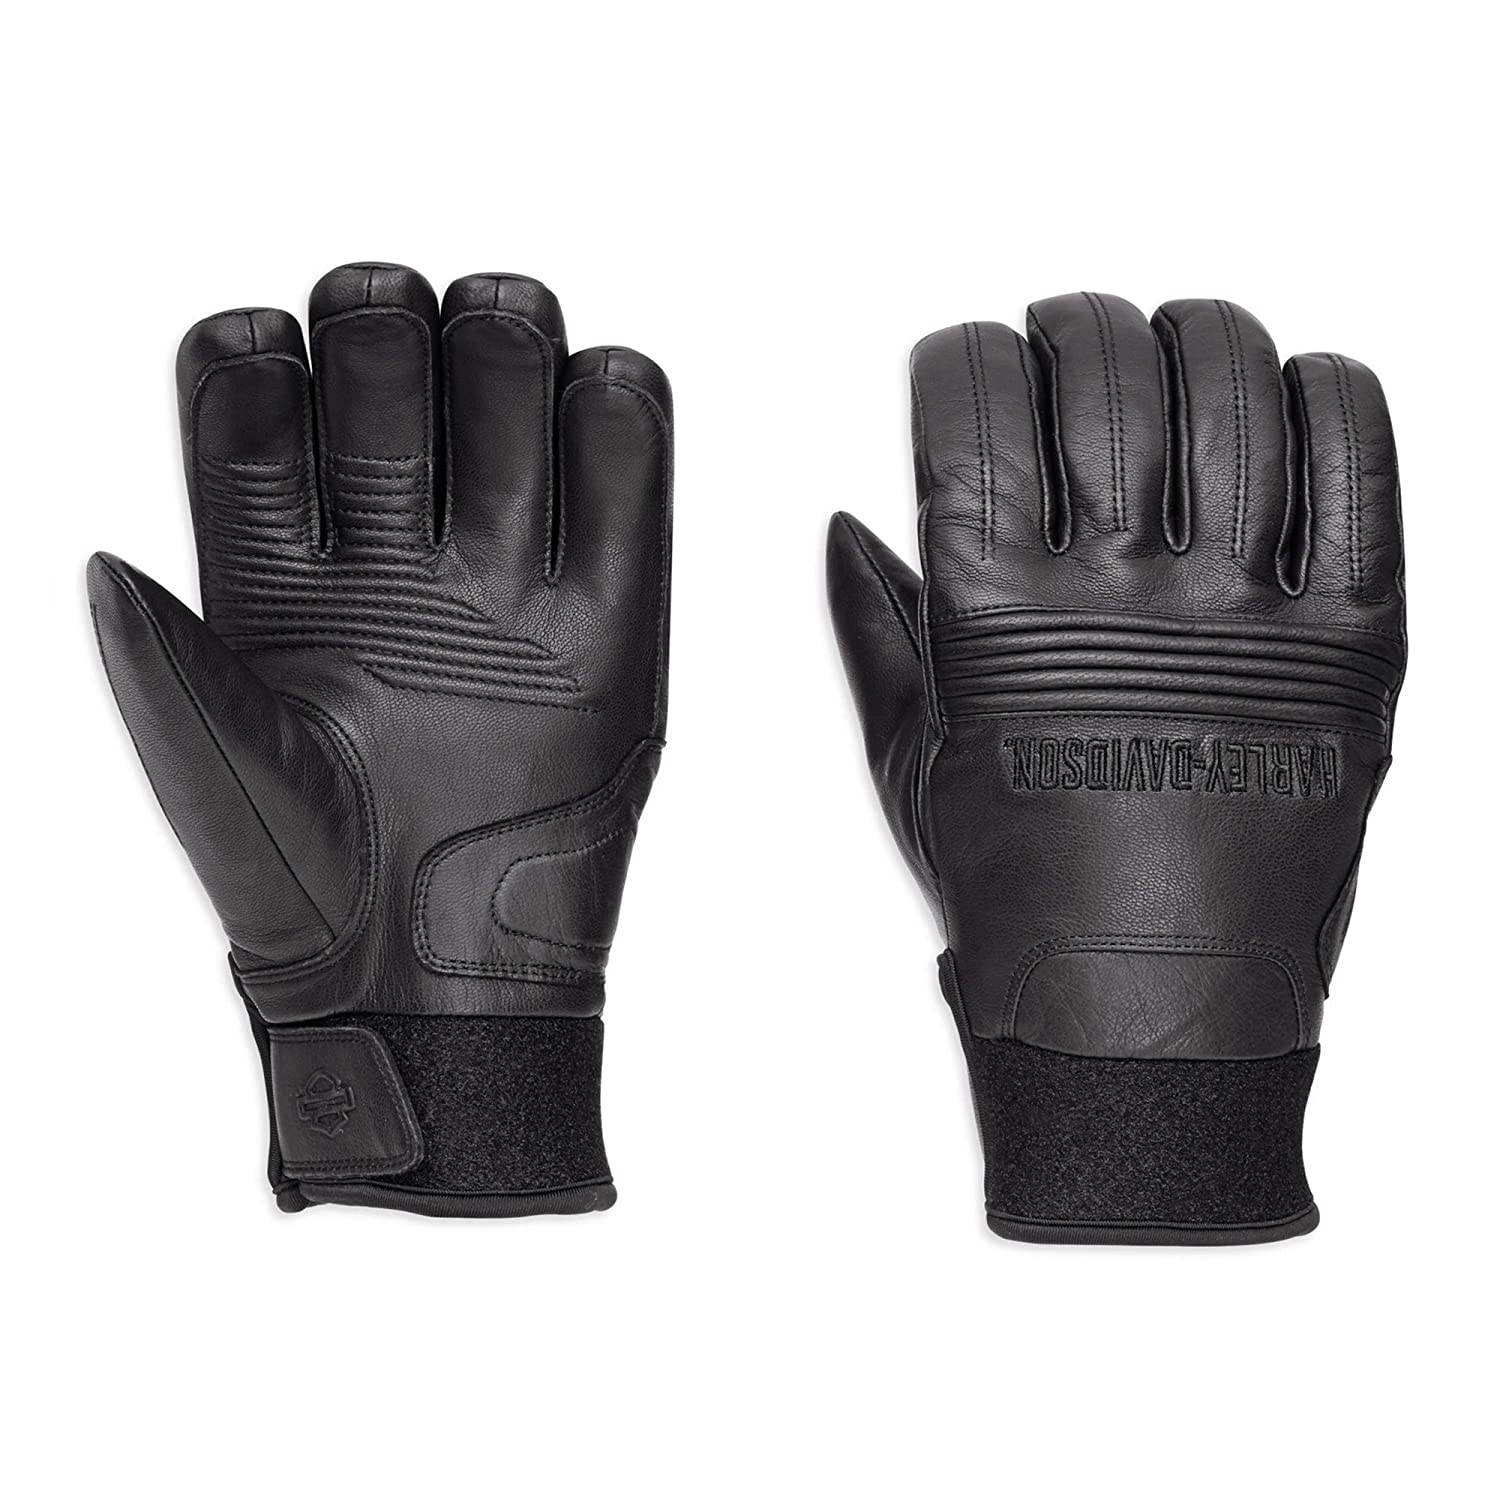 Harley-Davidson Cyrus Insulated Waterproof Gloves}